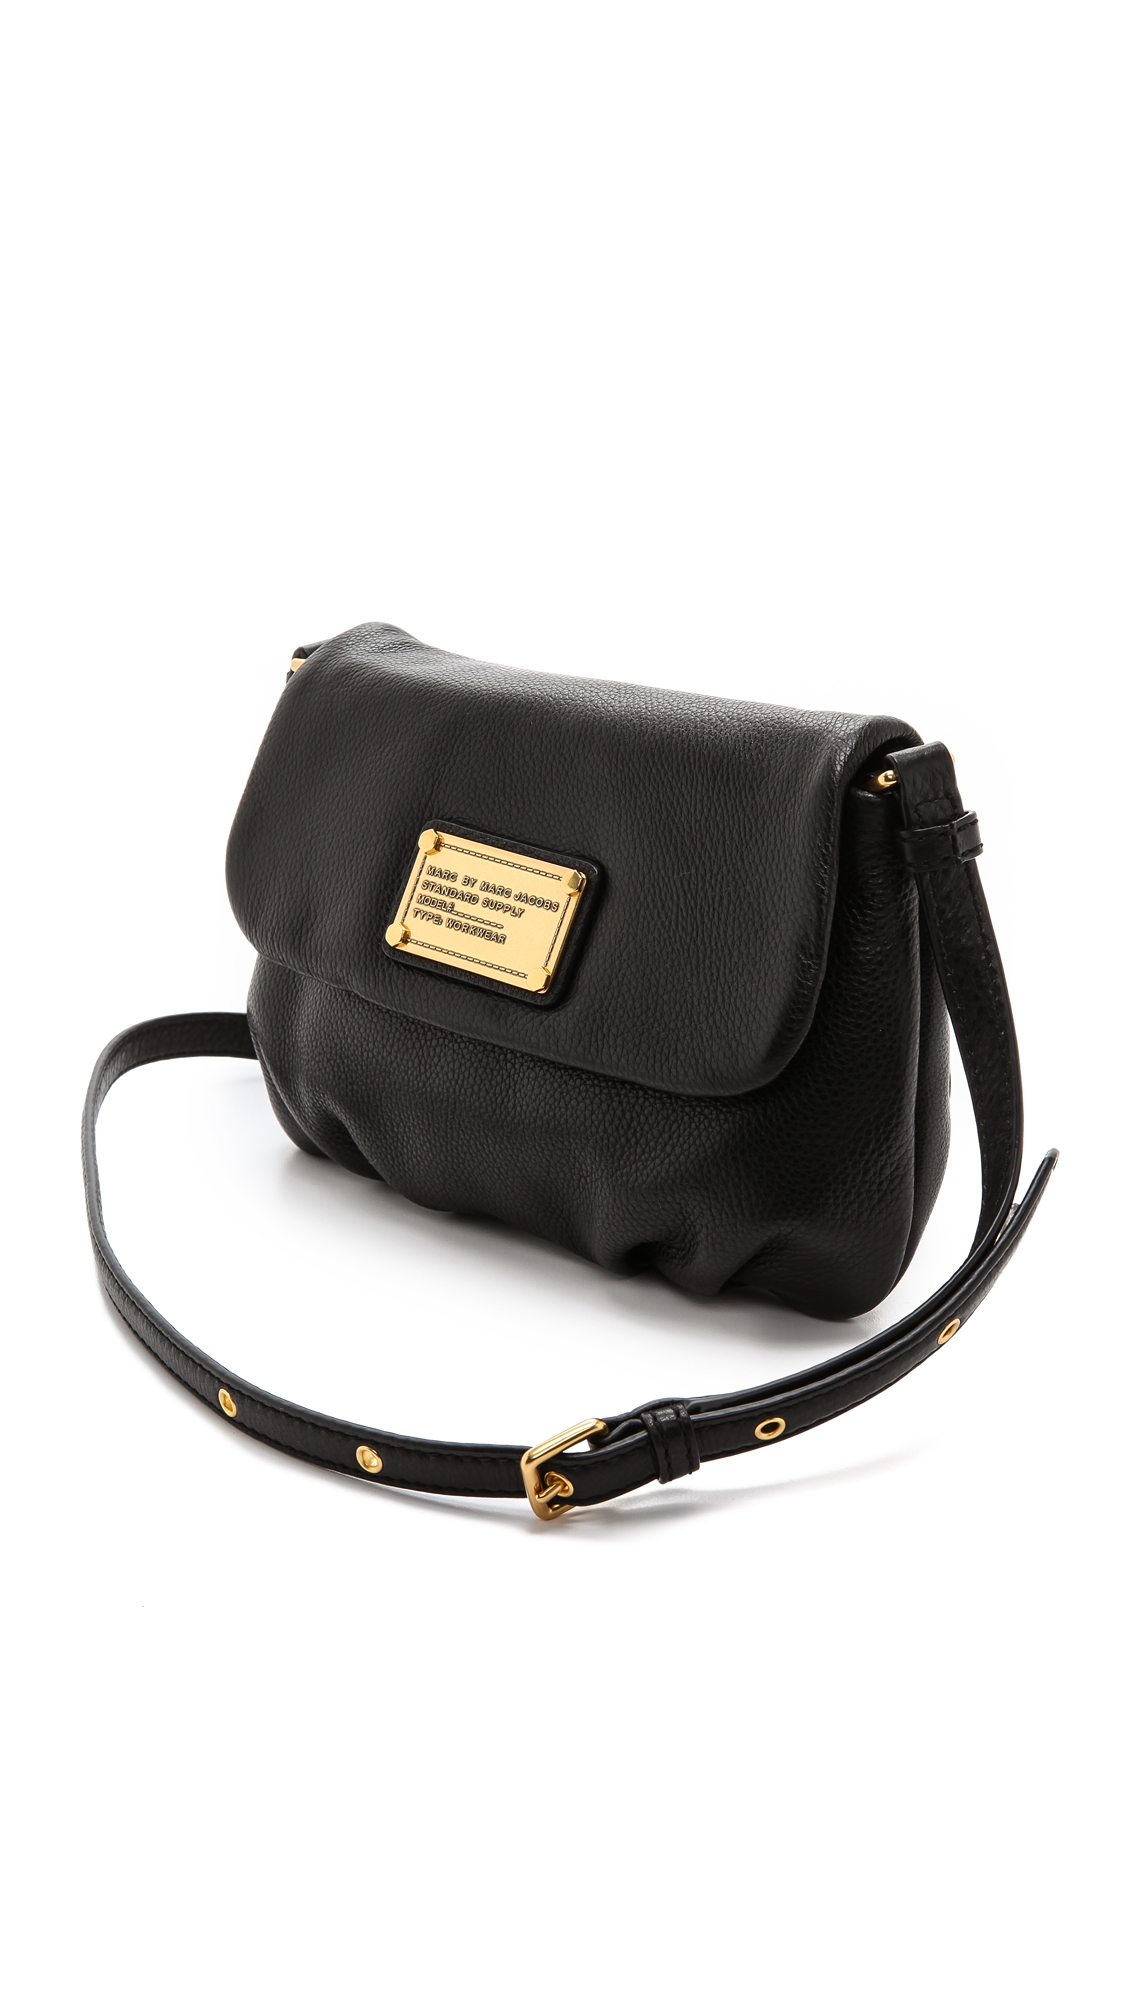 21f430fff4d76 Lyst - Marc By Marc Jacobs Classic Q Percy Leather Cross-Body Bag in ...